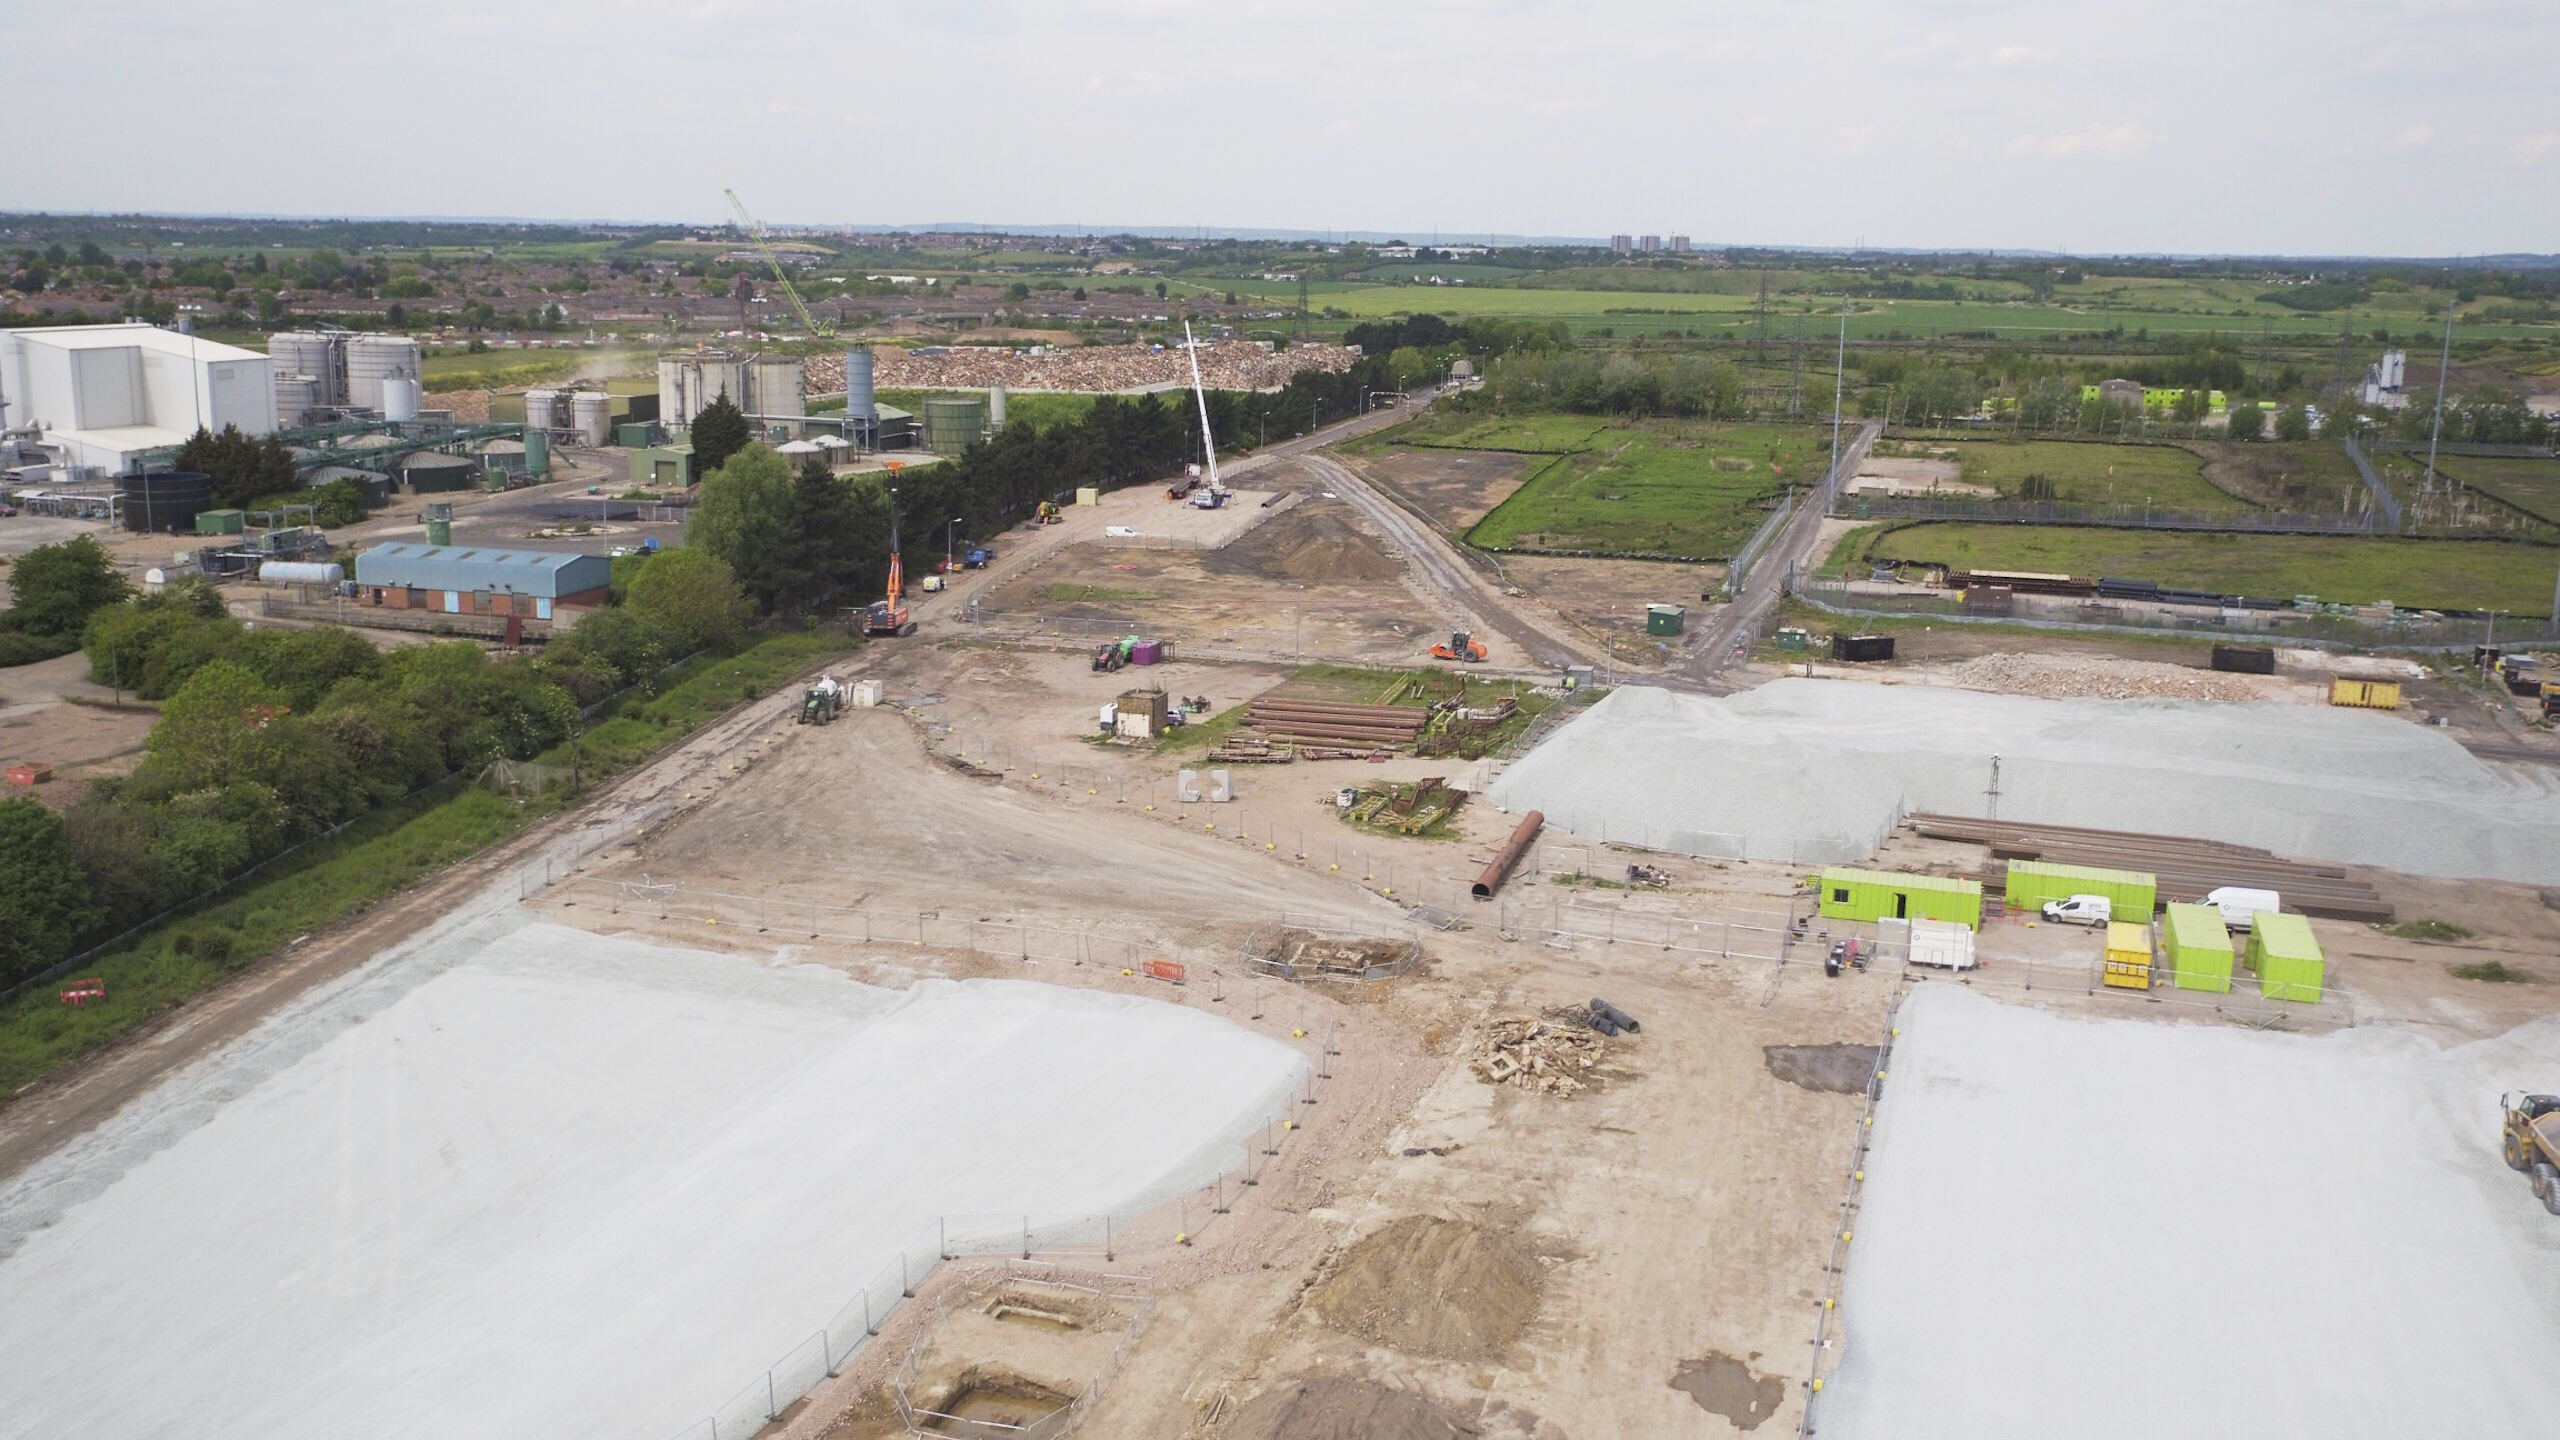 Concrete plans taking shape at Tilbury2 image